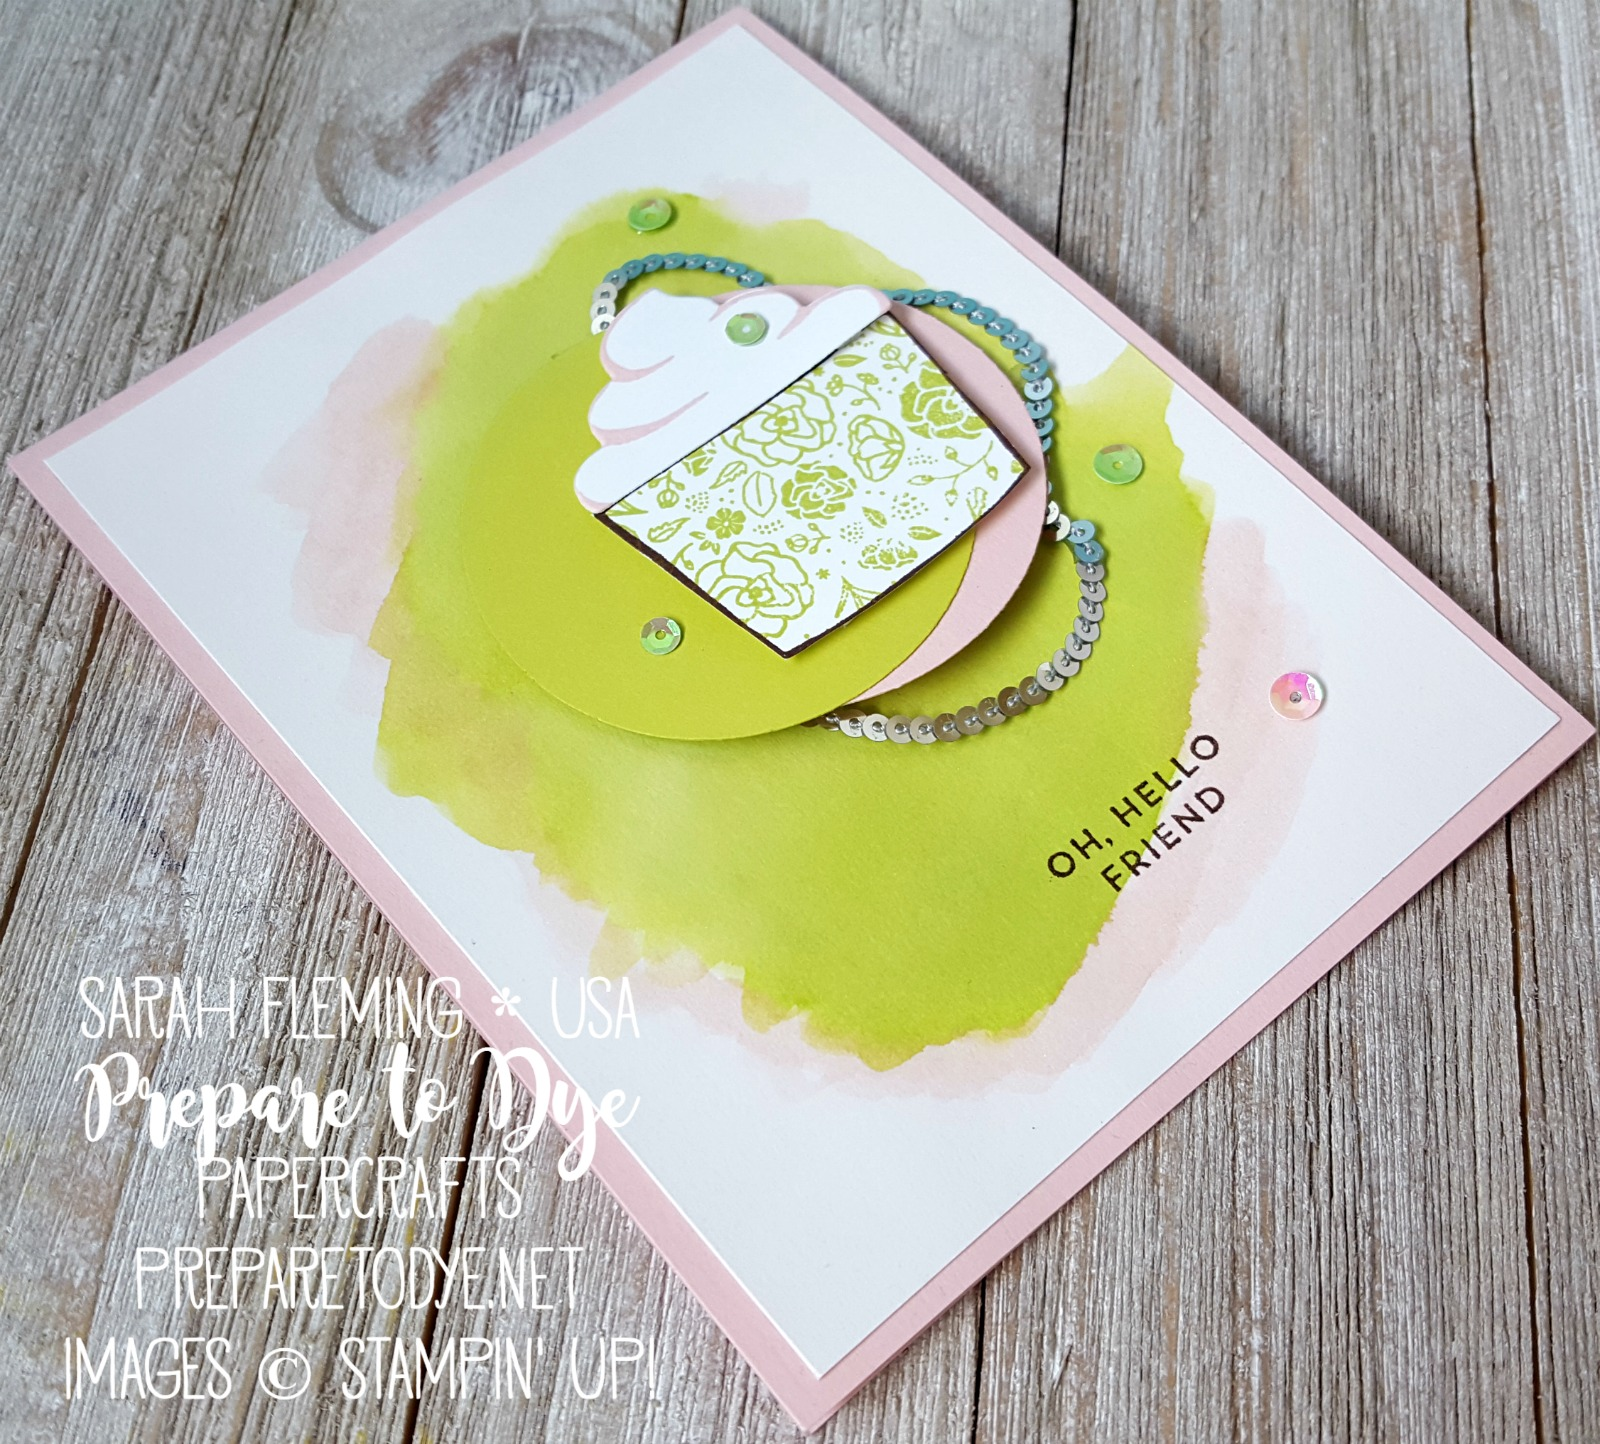 Stampin' Up! Coffee Cafe bundle with Coffee Cups framelits and Oh So Eclectic - watercolor wash - ice cream handmade card - Sarah Fleming - Prepare to Dye Papercrafts